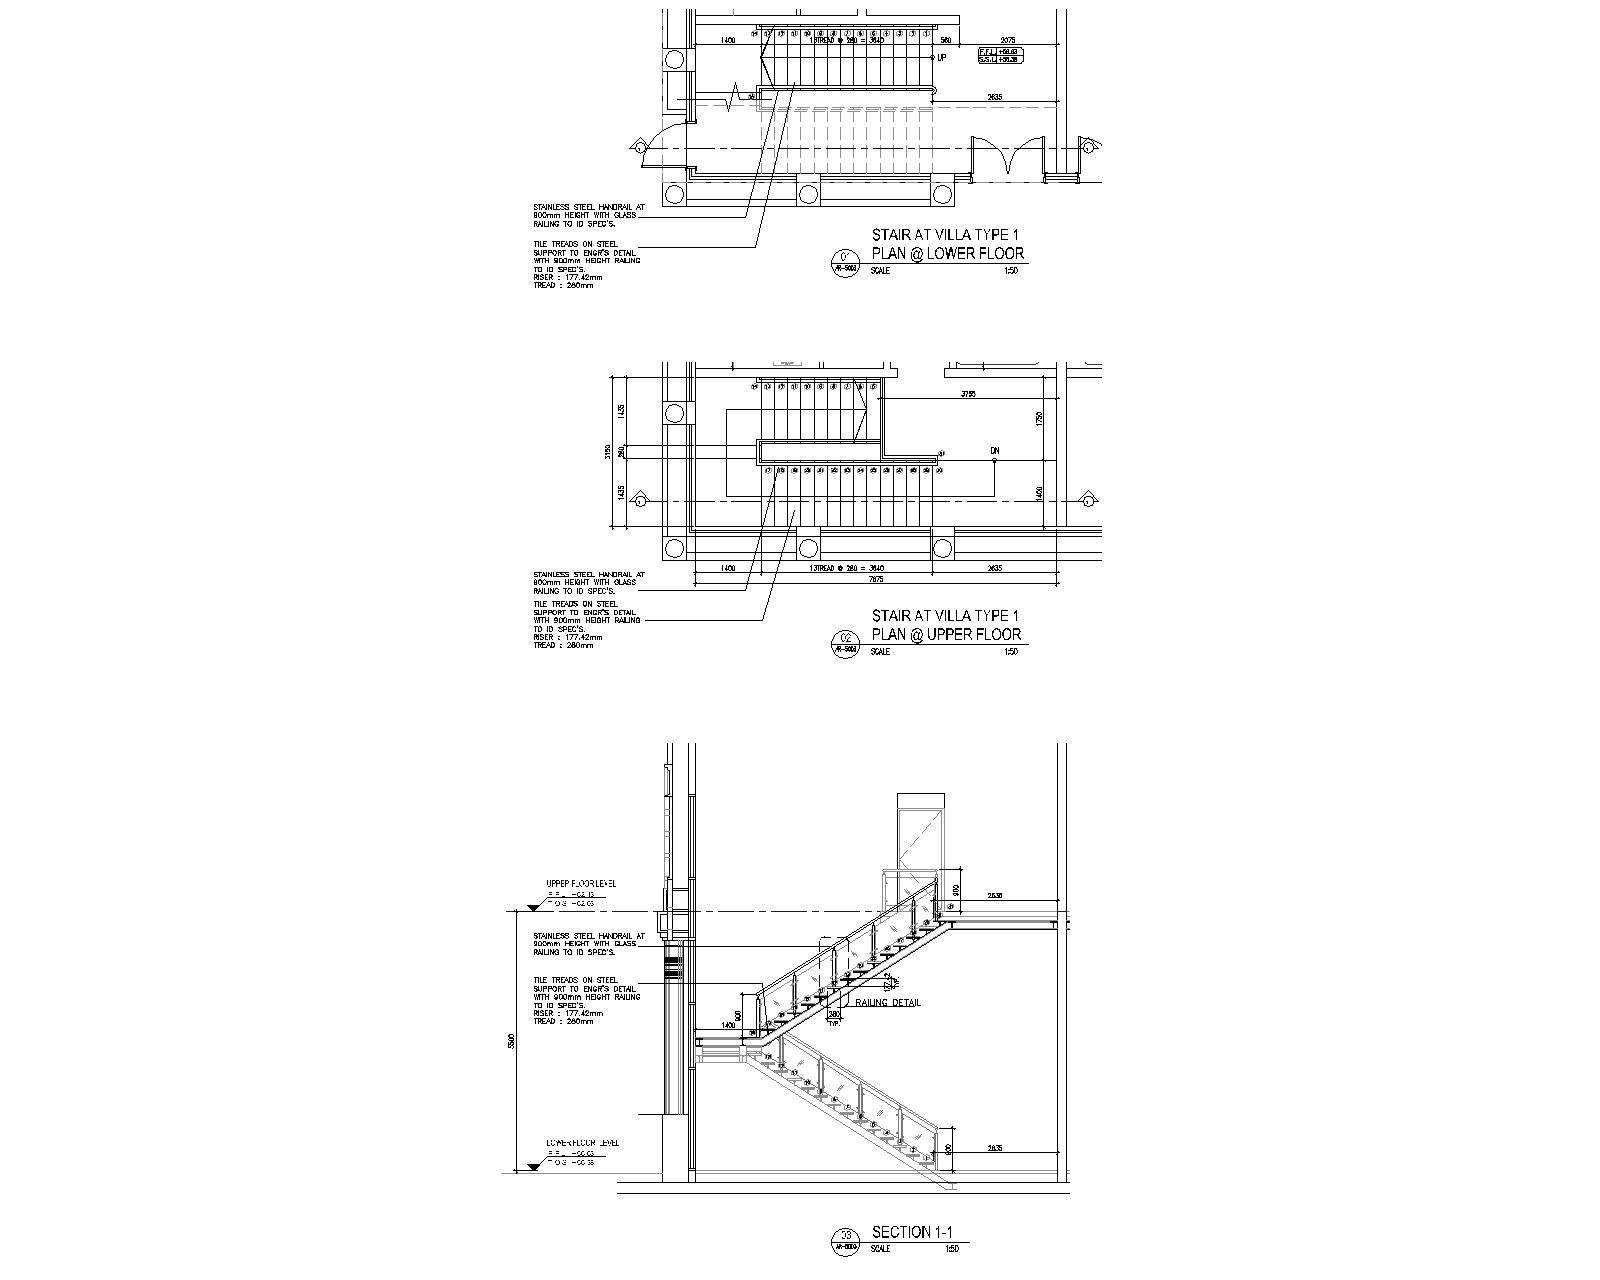 Phil. Arch. Review: STEEL STAIR DETAIL